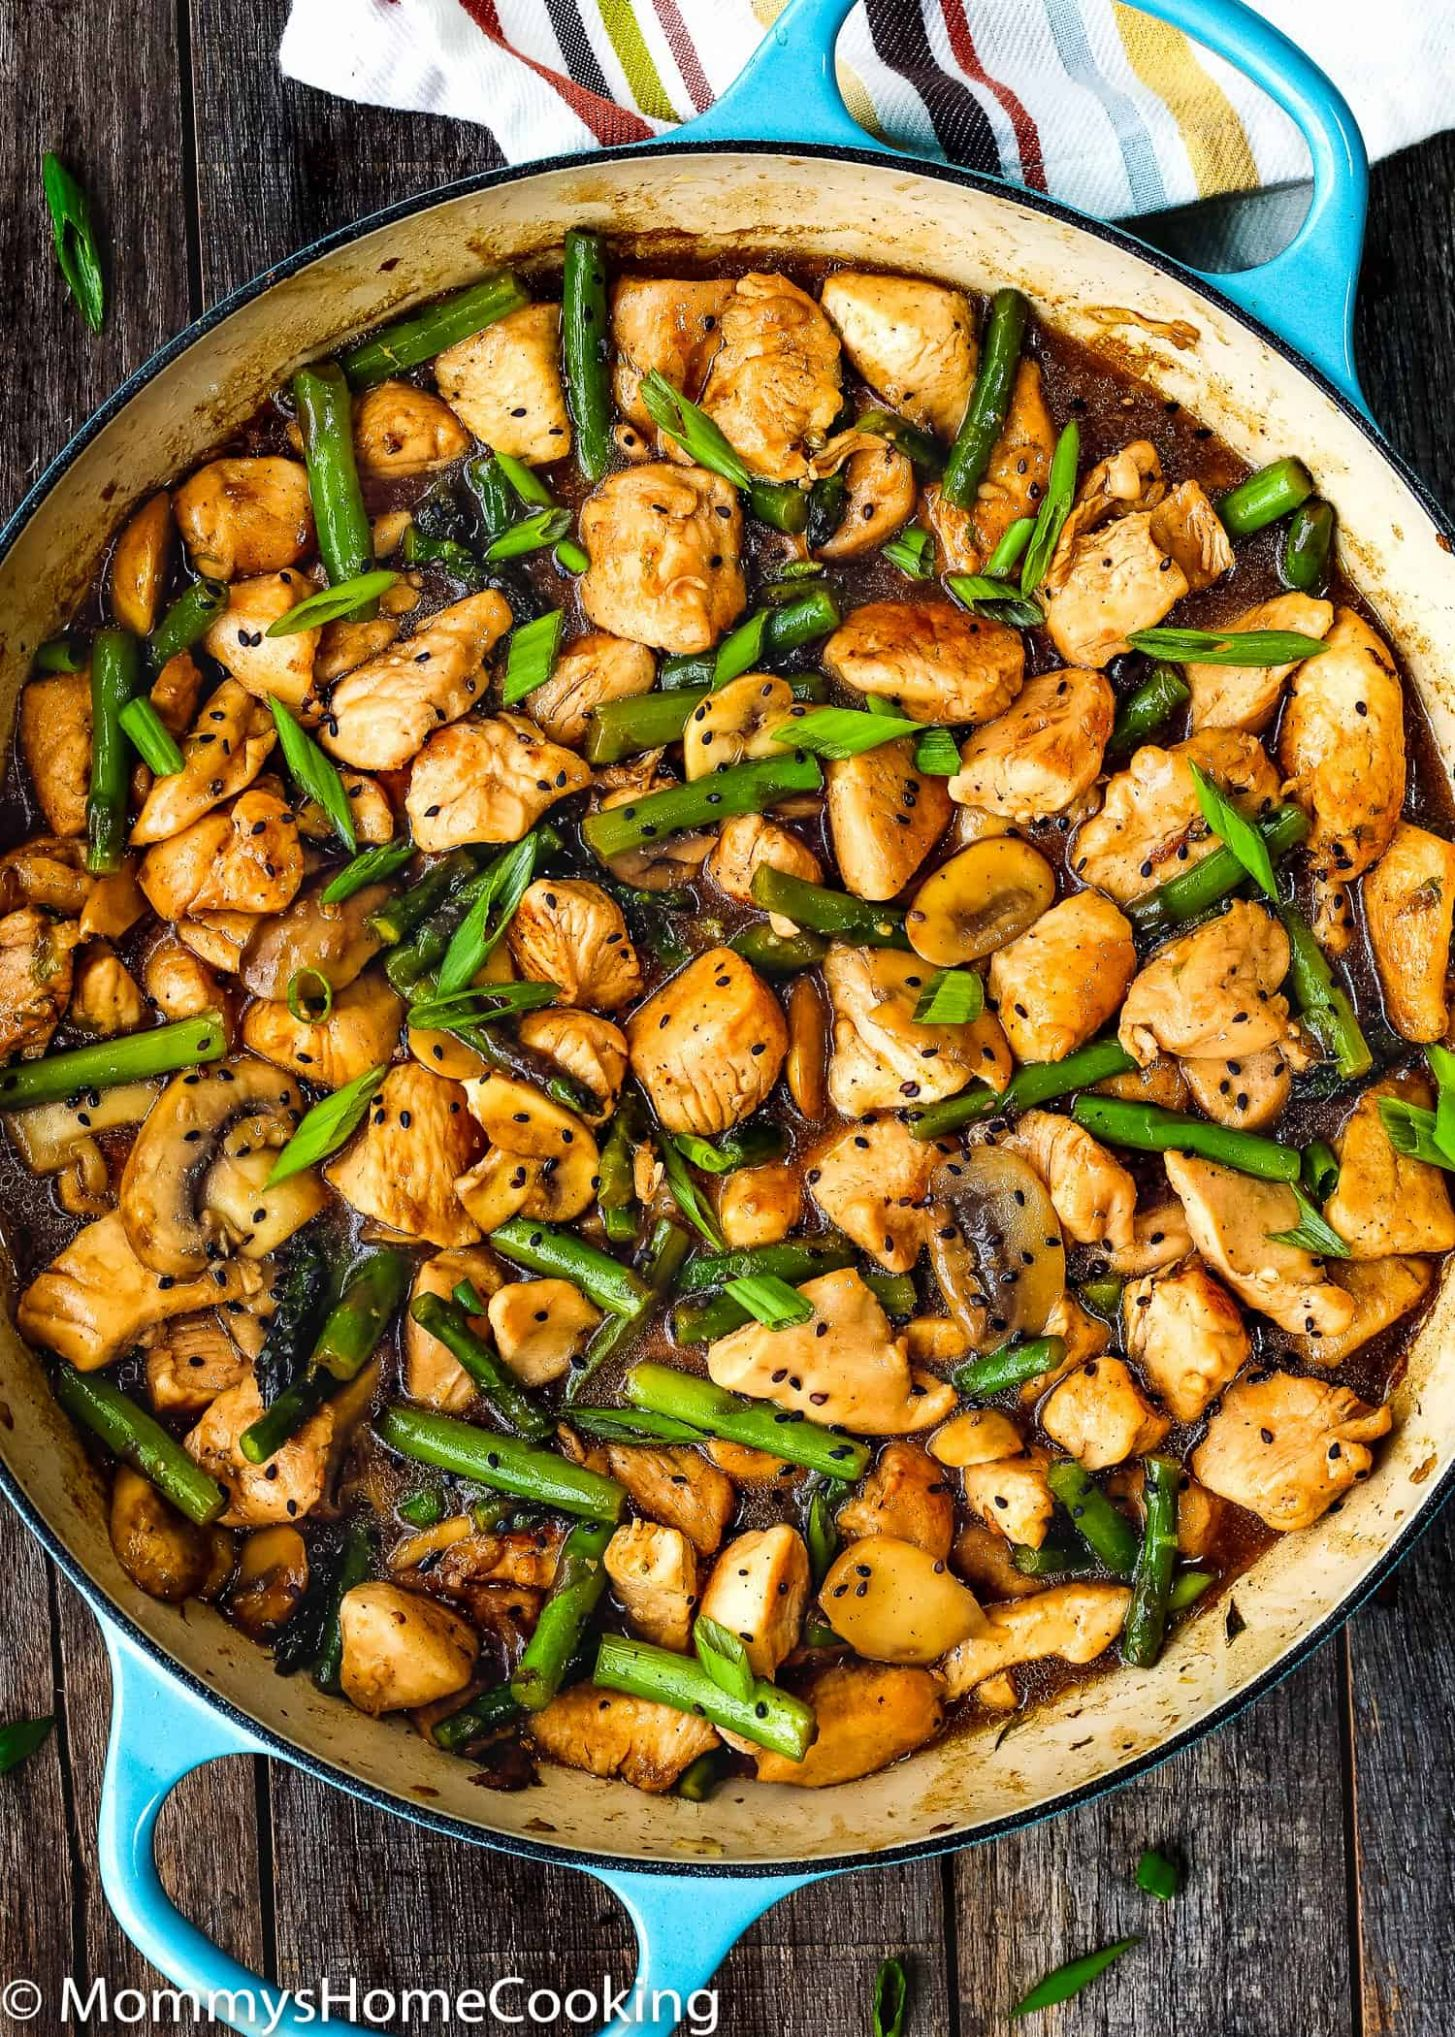 Easy Healthy Chicken and Asparagus Skillet - Simple Recipes Healthy Dinner